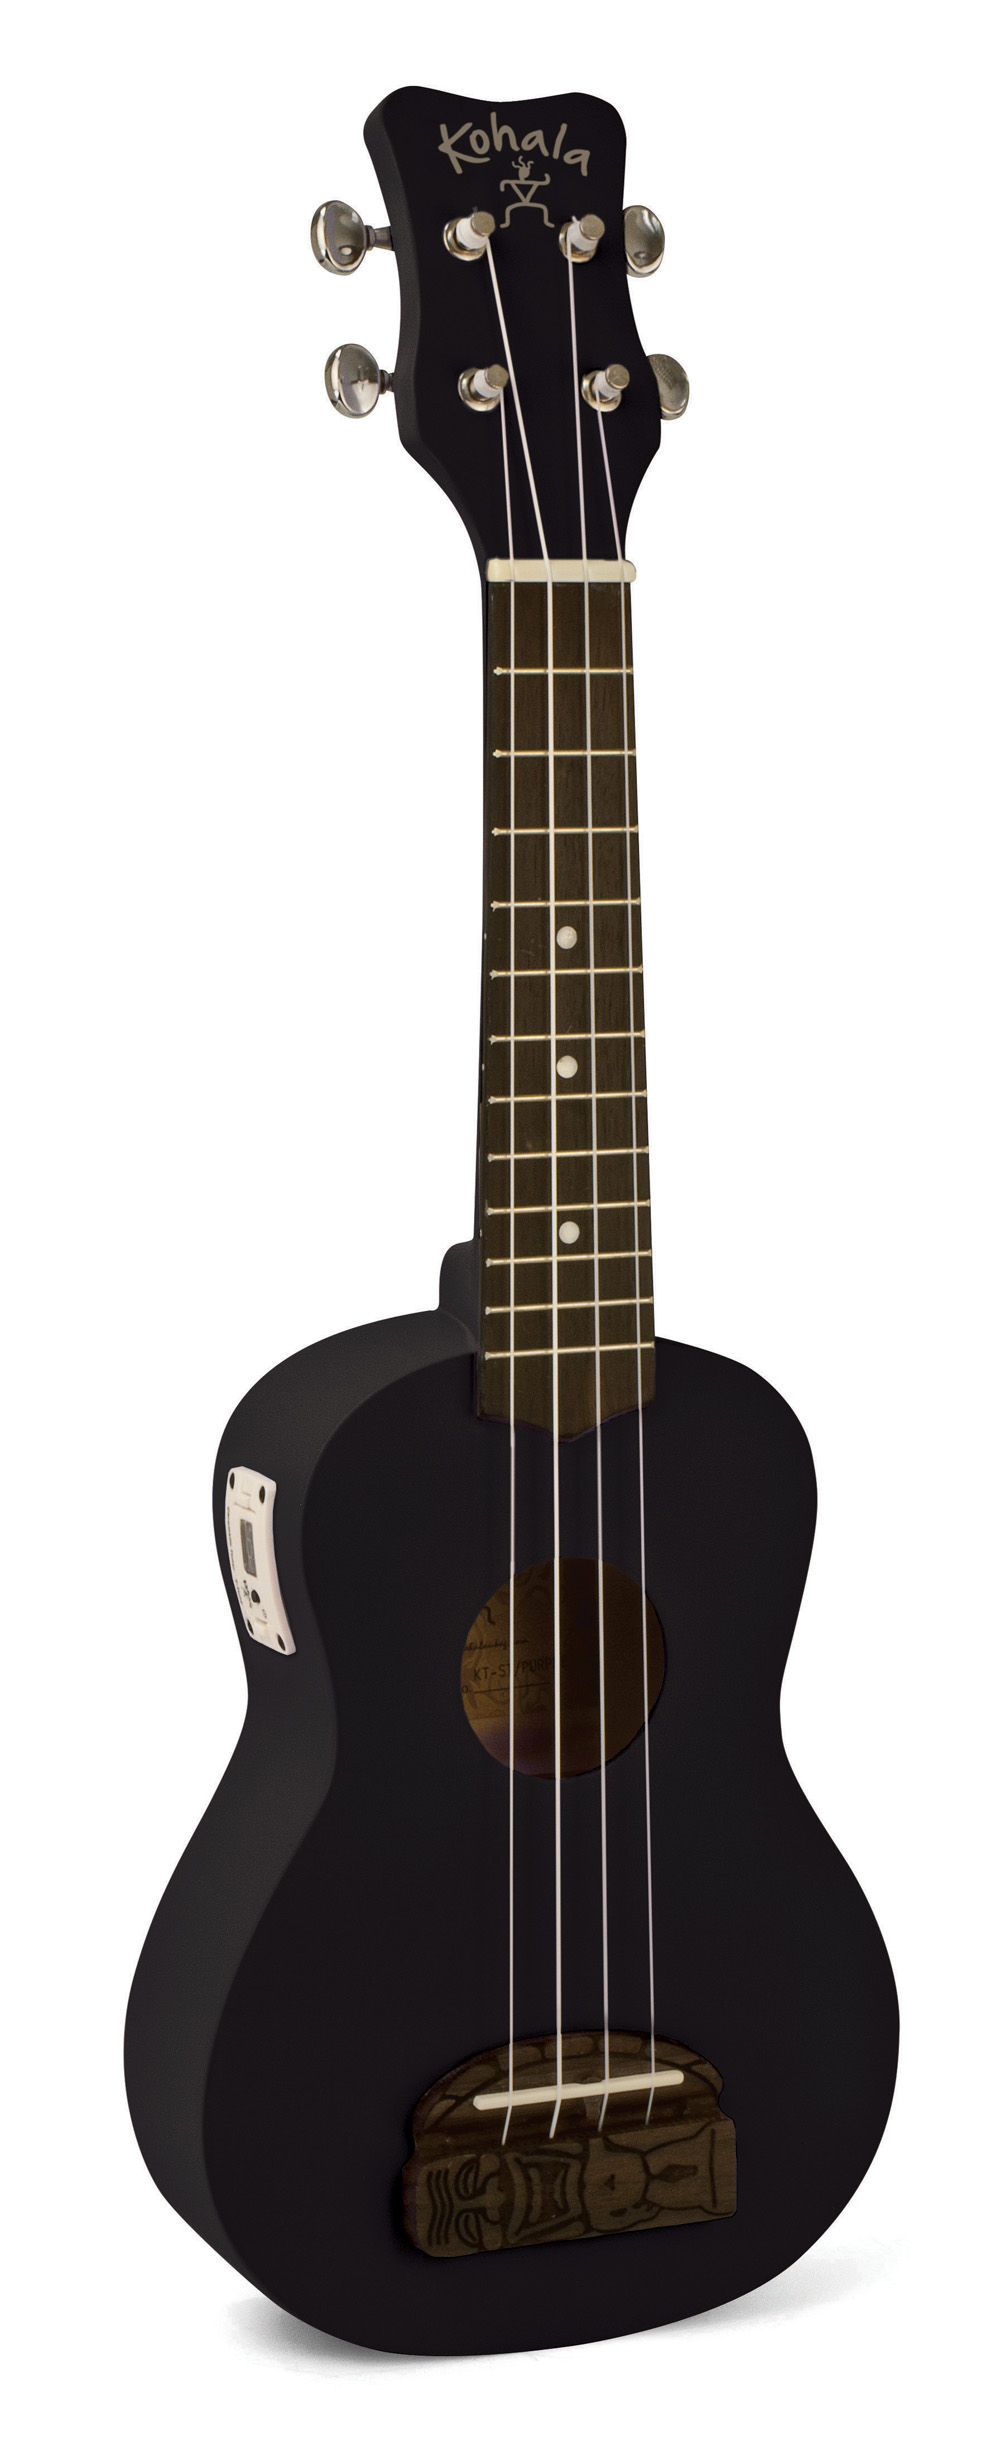 KT-STBK Kohala Tiki Uke Black Soprano Ukulele with built in tuner